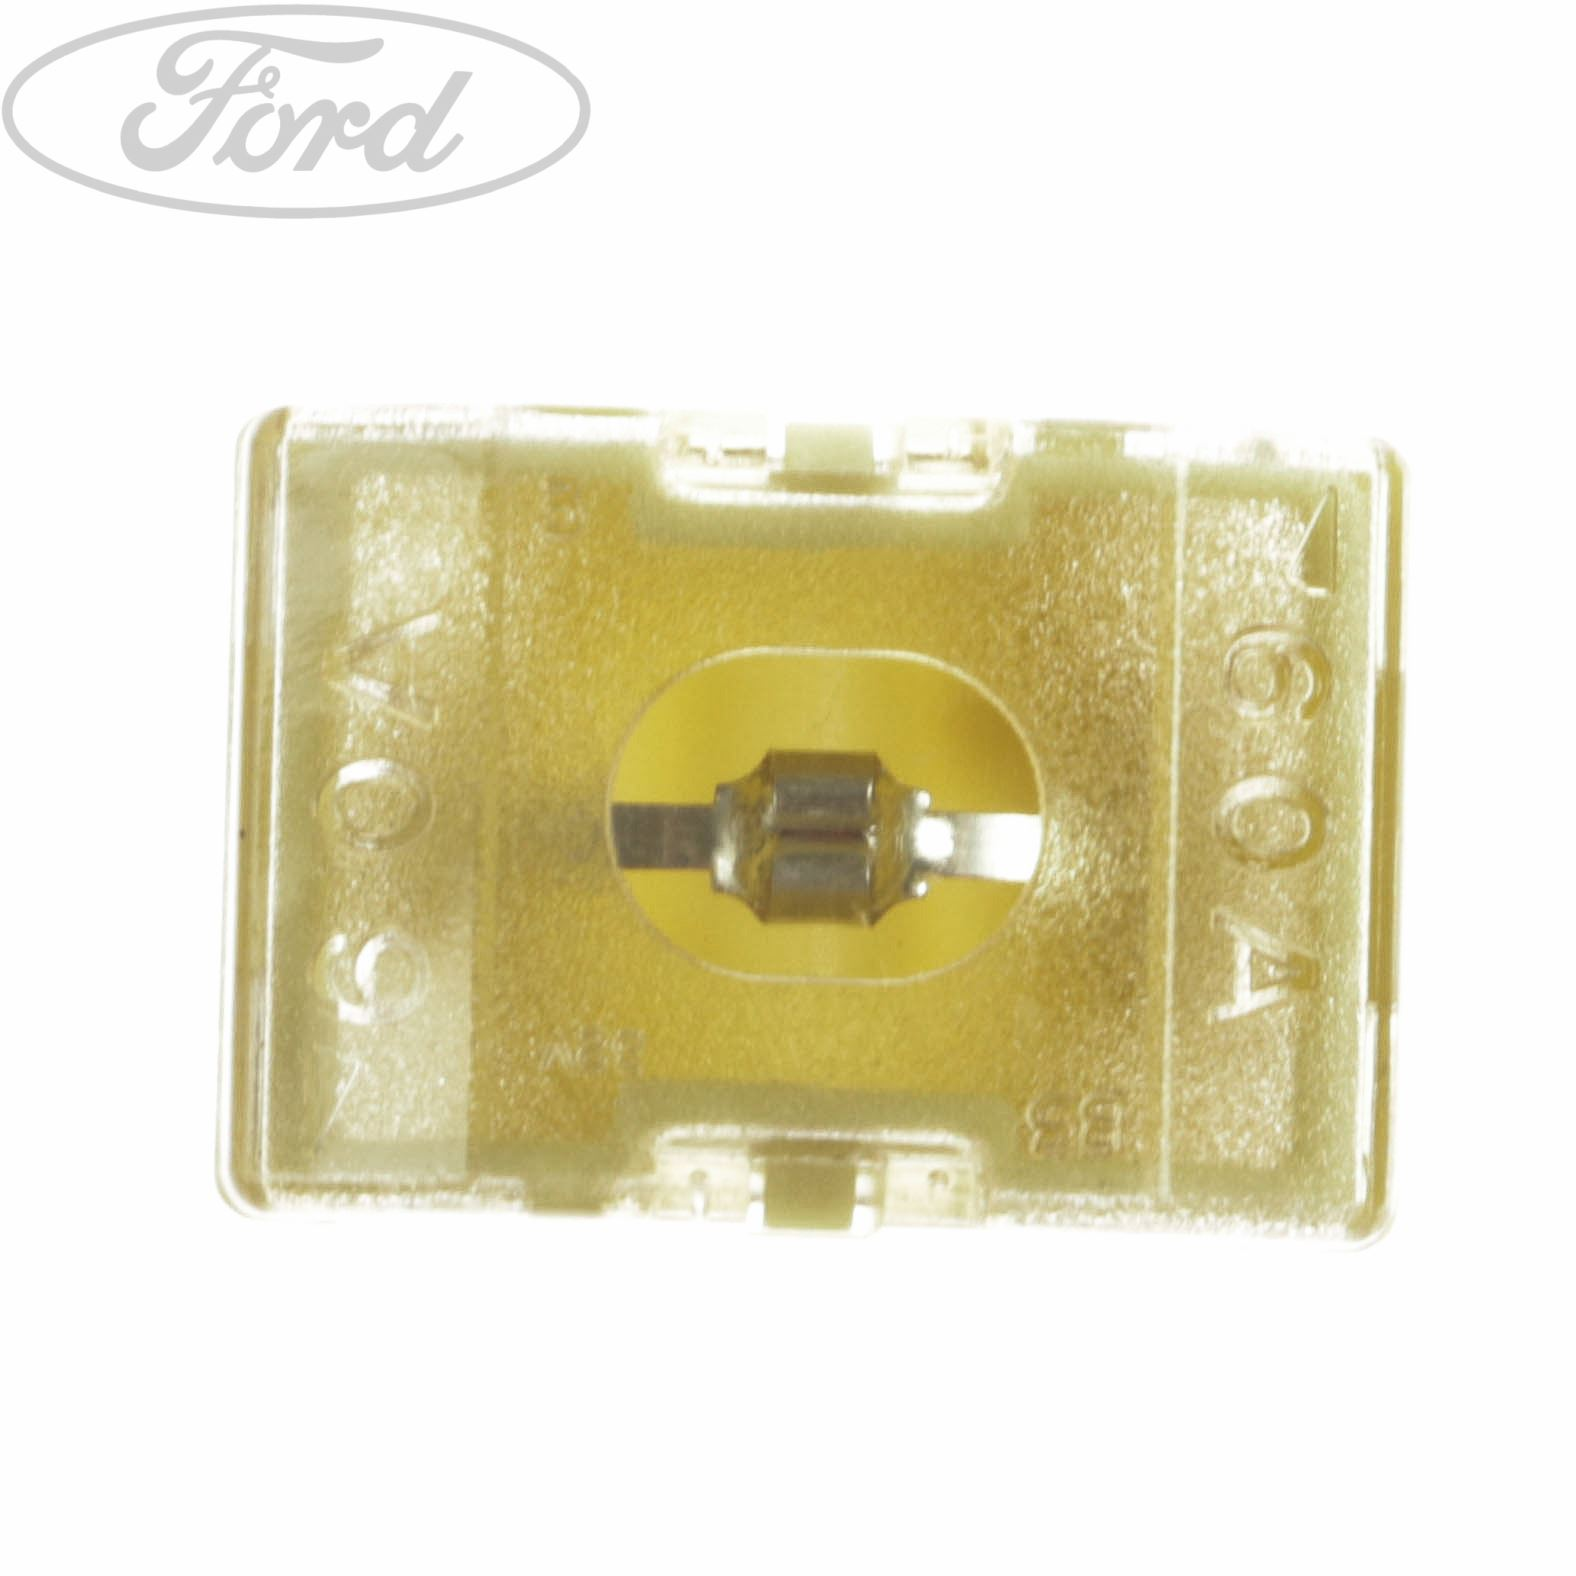 hight resolution of details about genuine ford escort orion sierra fiesta transit motorcraft 60 amp fuse 6509686